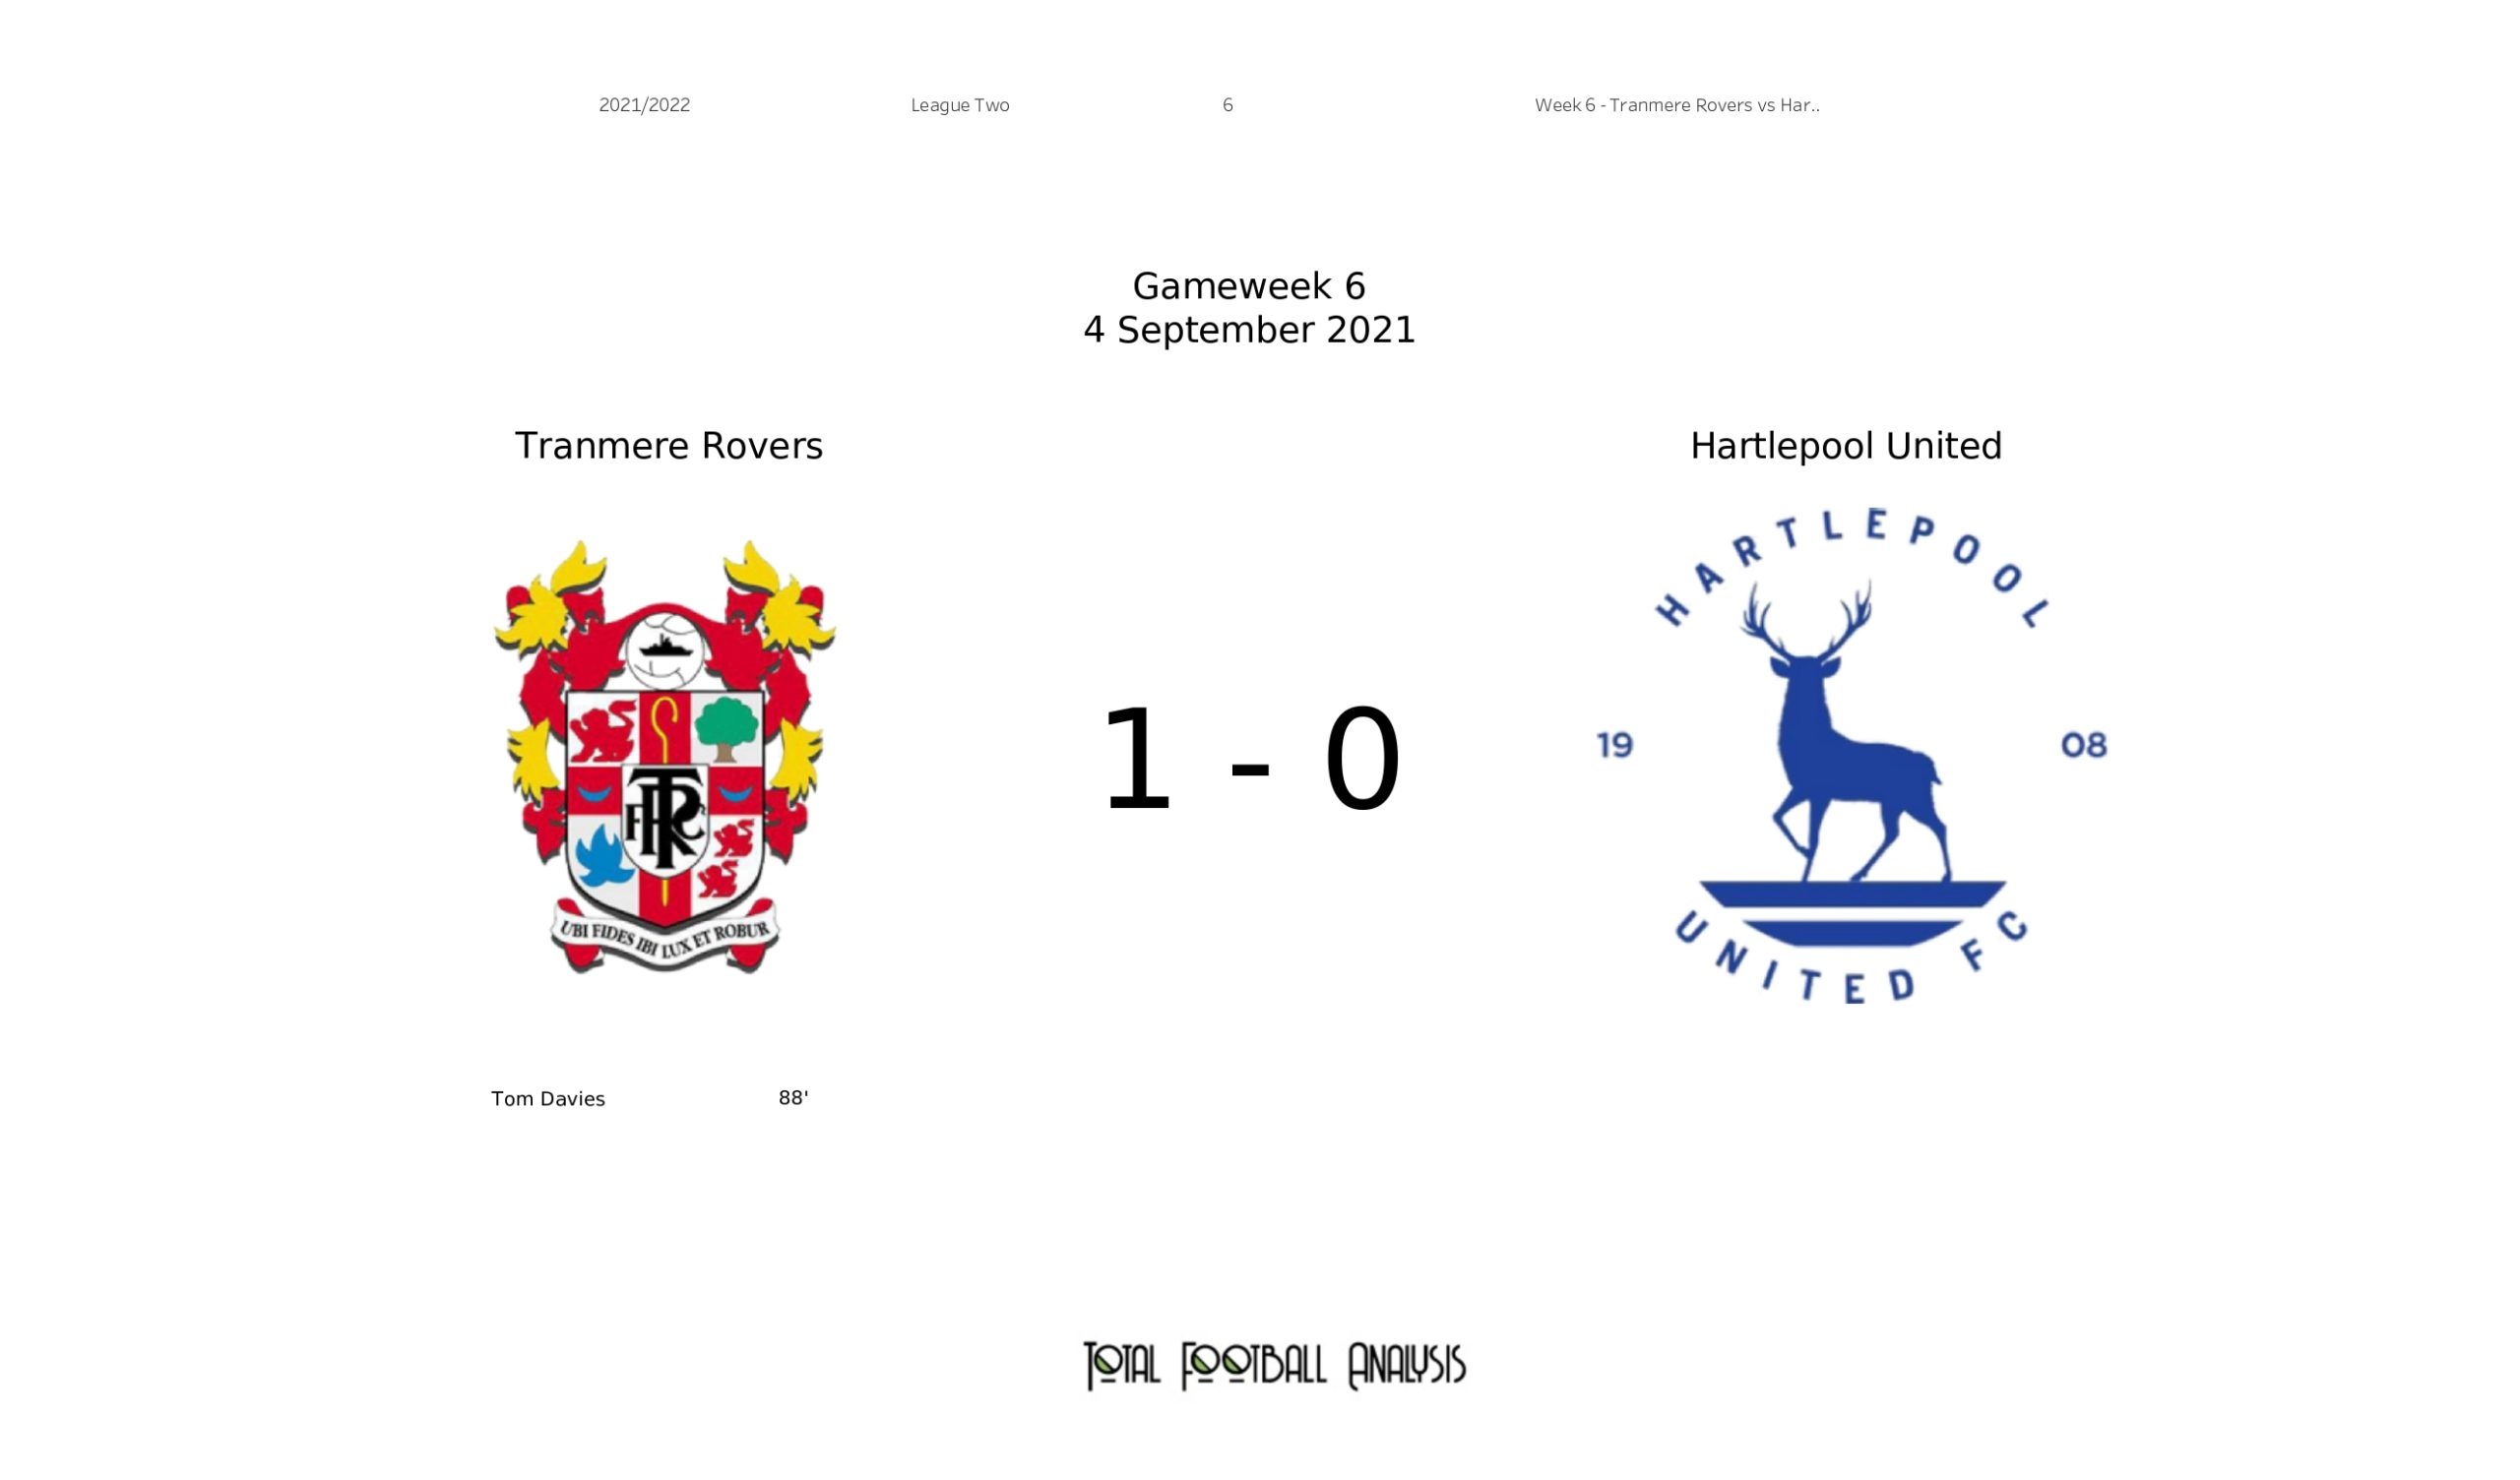 League Two Stats : Tranmere Rovers vs Hartlepool United